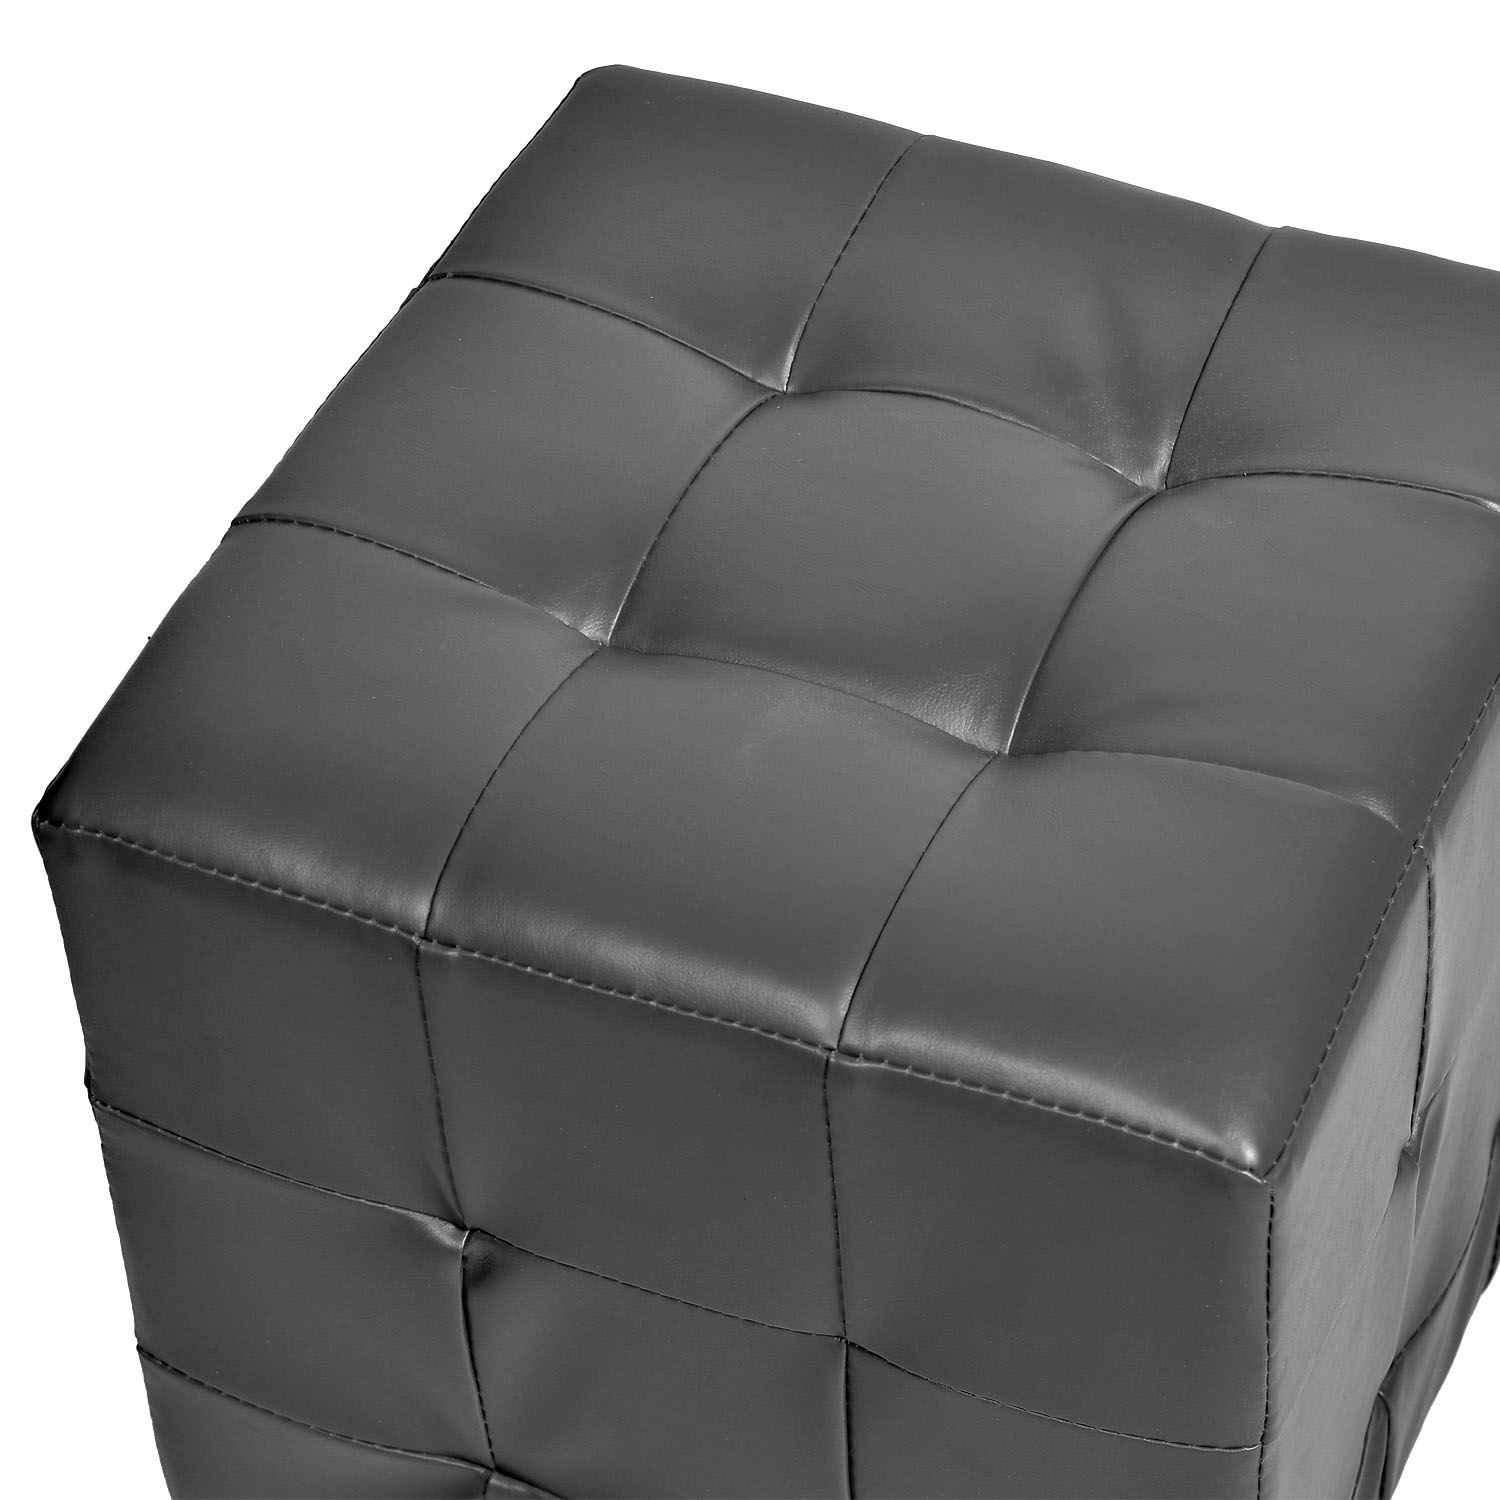 deco in paris pouf carre capitonne gris ducas pouf ducas pu gris. Black Bedroom Furniture Sets. Home Design Ideas